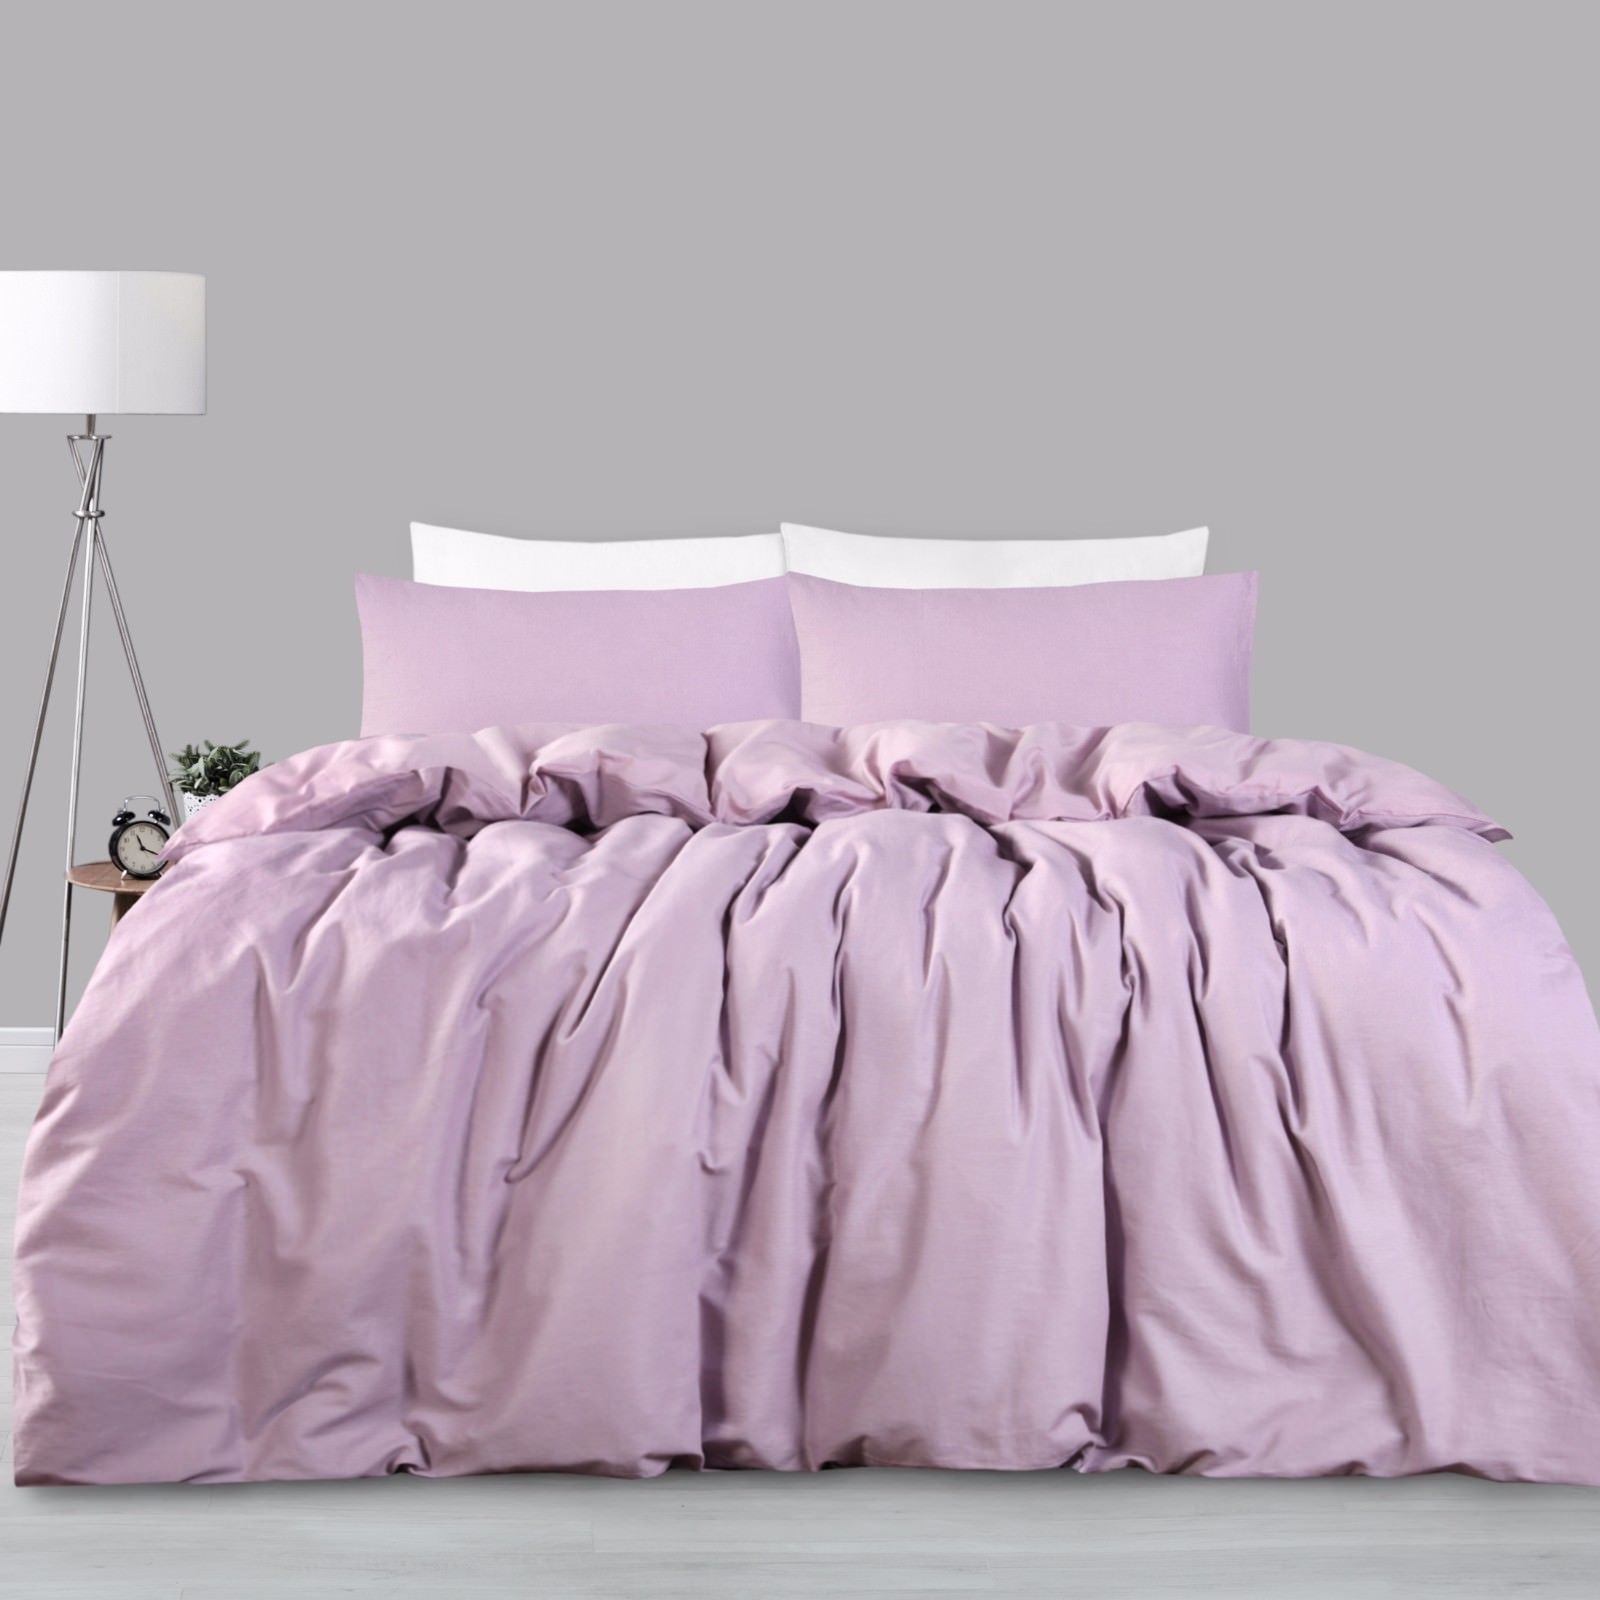 luxury cotton linen bedding duvet cover set twin queen king size customized ebay. Black Bedroom Furniture Sets. Home Design Ideas